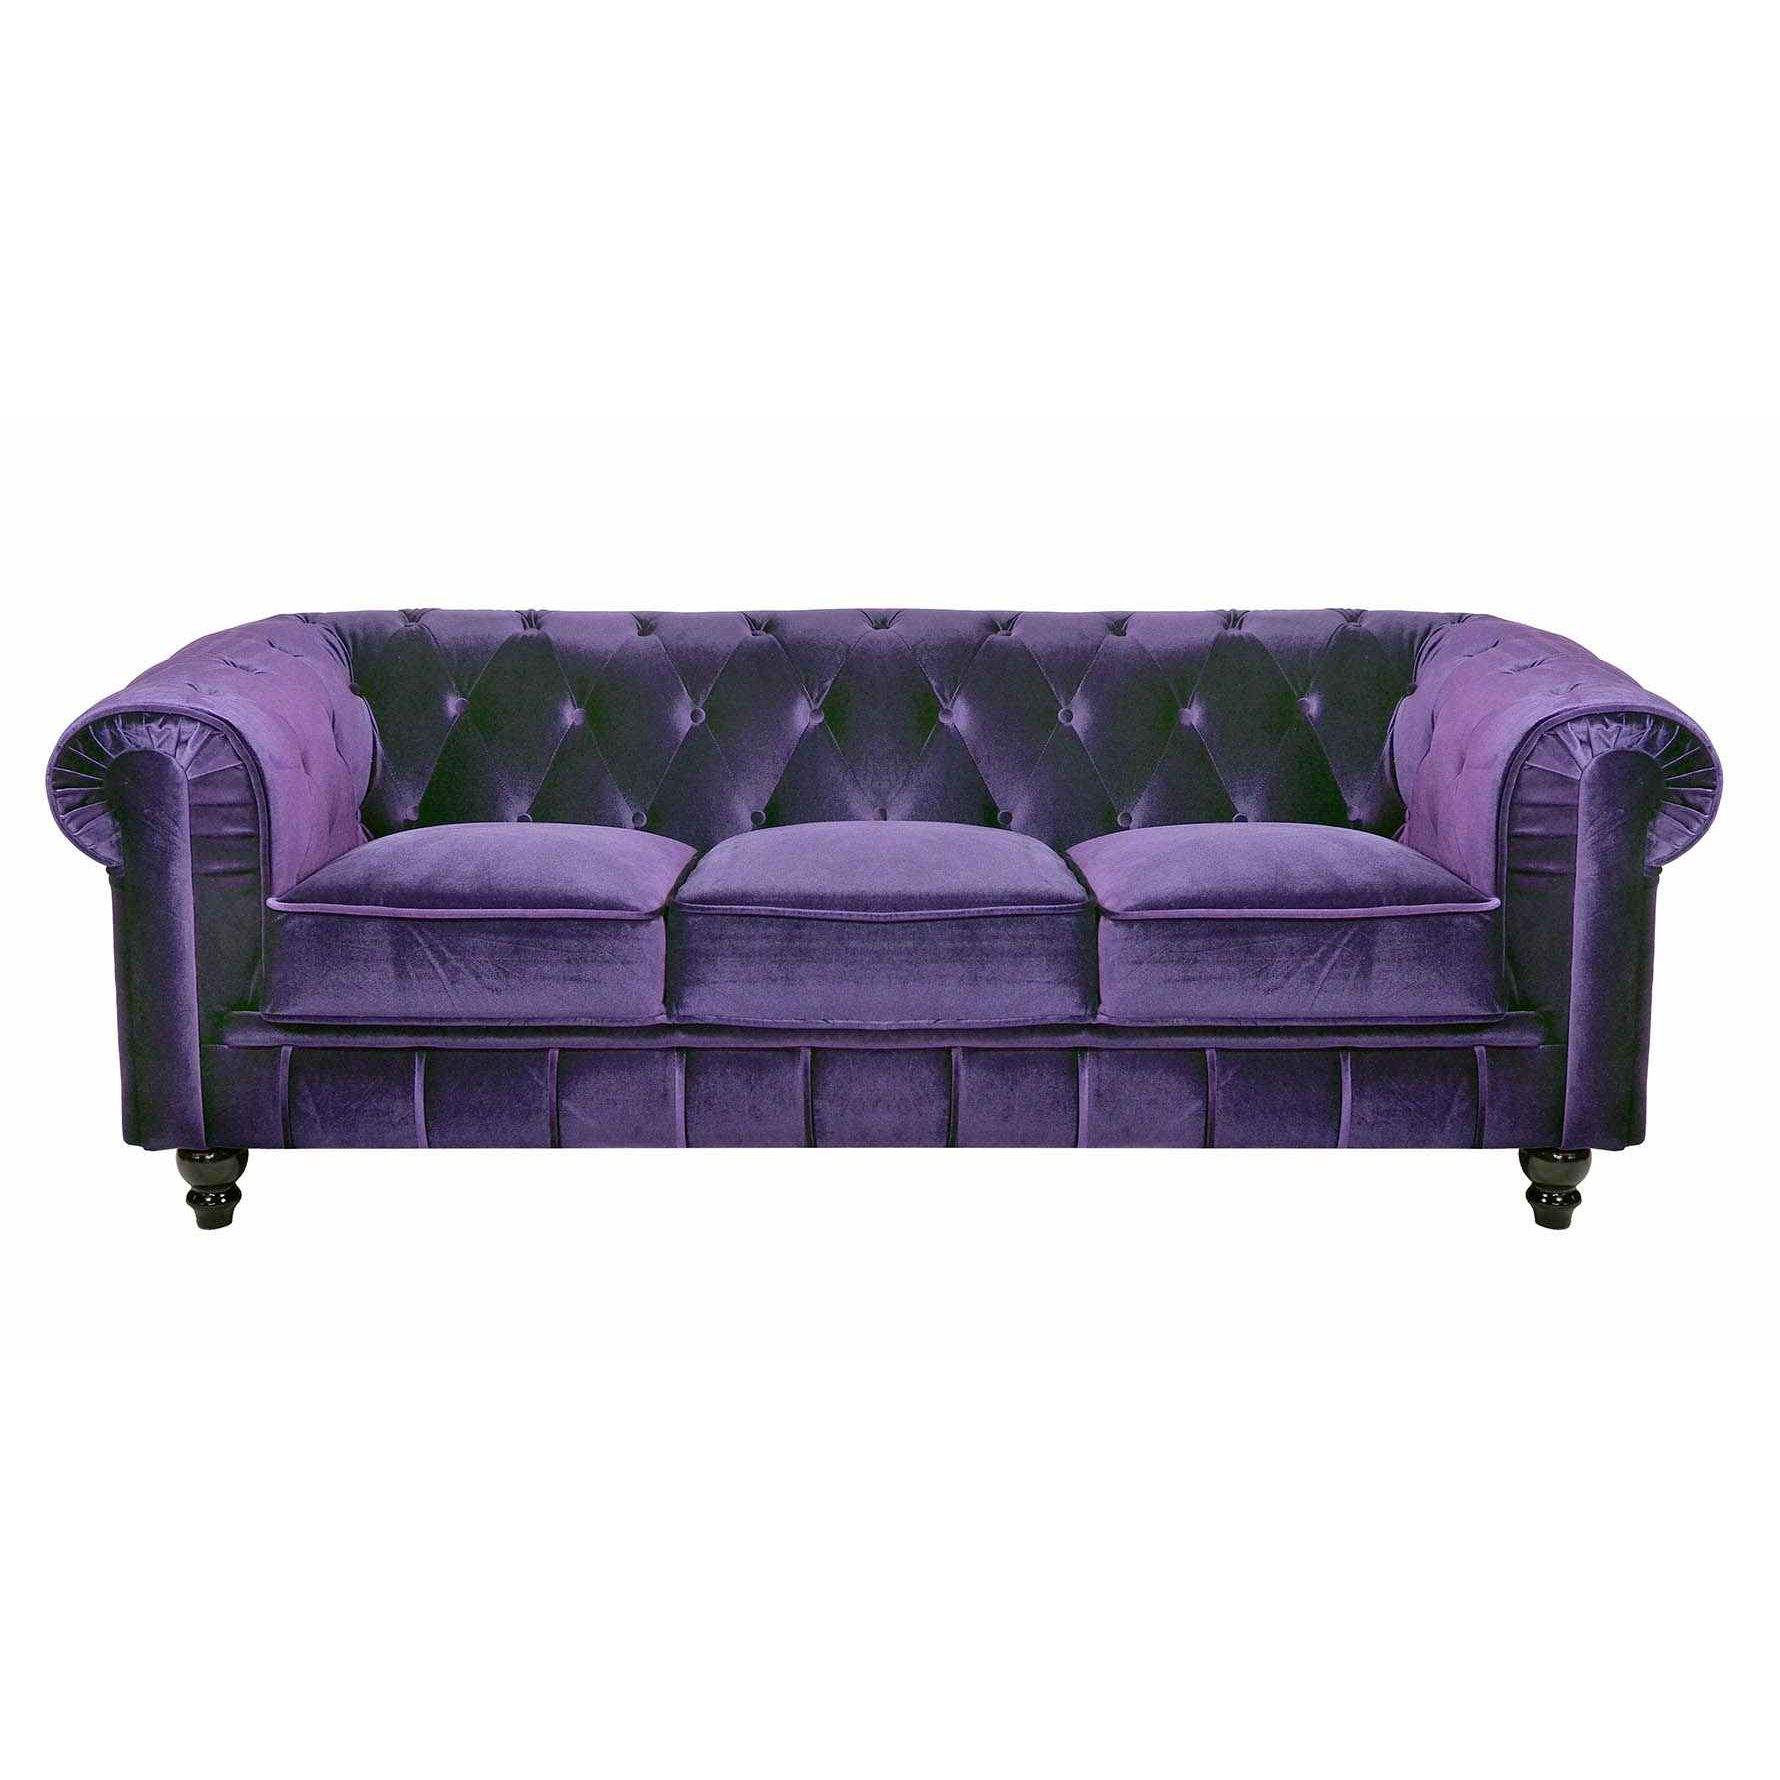 Deco in paris canape 3 places velours violet chesterfield can chester 3p ve - Canape chesterfield violet ...